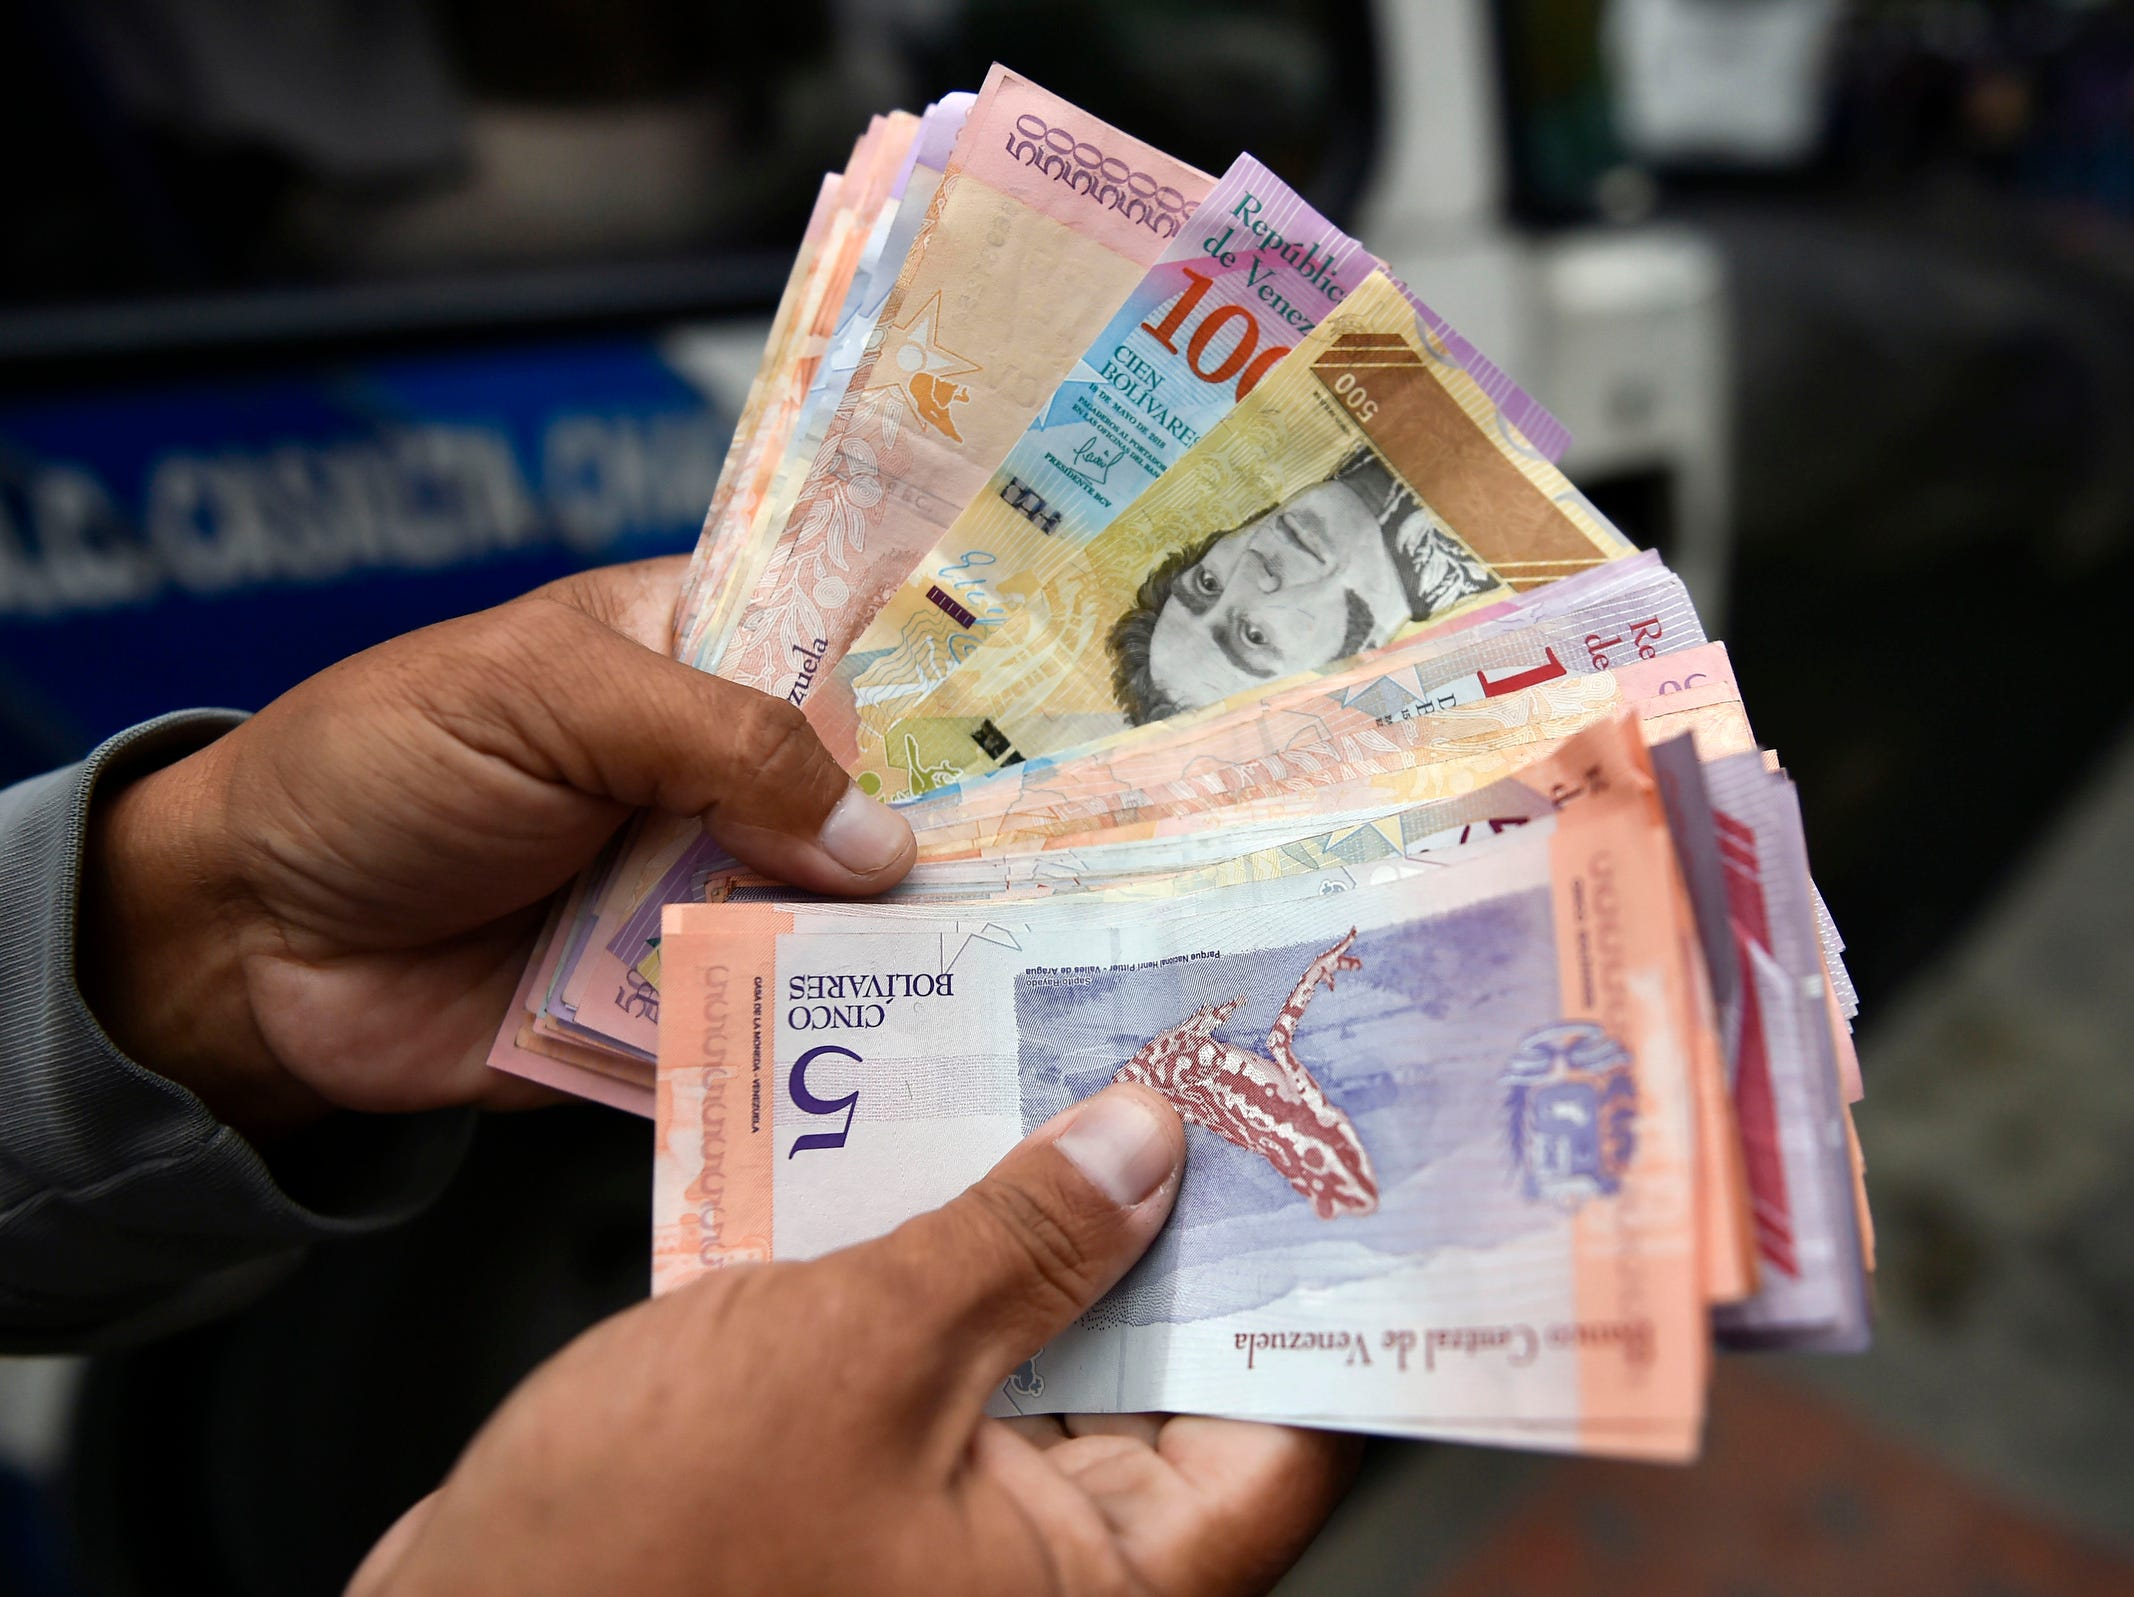 A man counts Bolivar bills in a street of Caracas, Tuesday. Venezuela devalued its currency by almost 35 percent on Monday to bring it into line with the exchange rate of the dollar on the black market. The exchange rate is now fixed at 3,200 bolivars to the dollar, almost matching the 3,118.62 offered on the dolartoday.com site that acts as the reference for the black market.